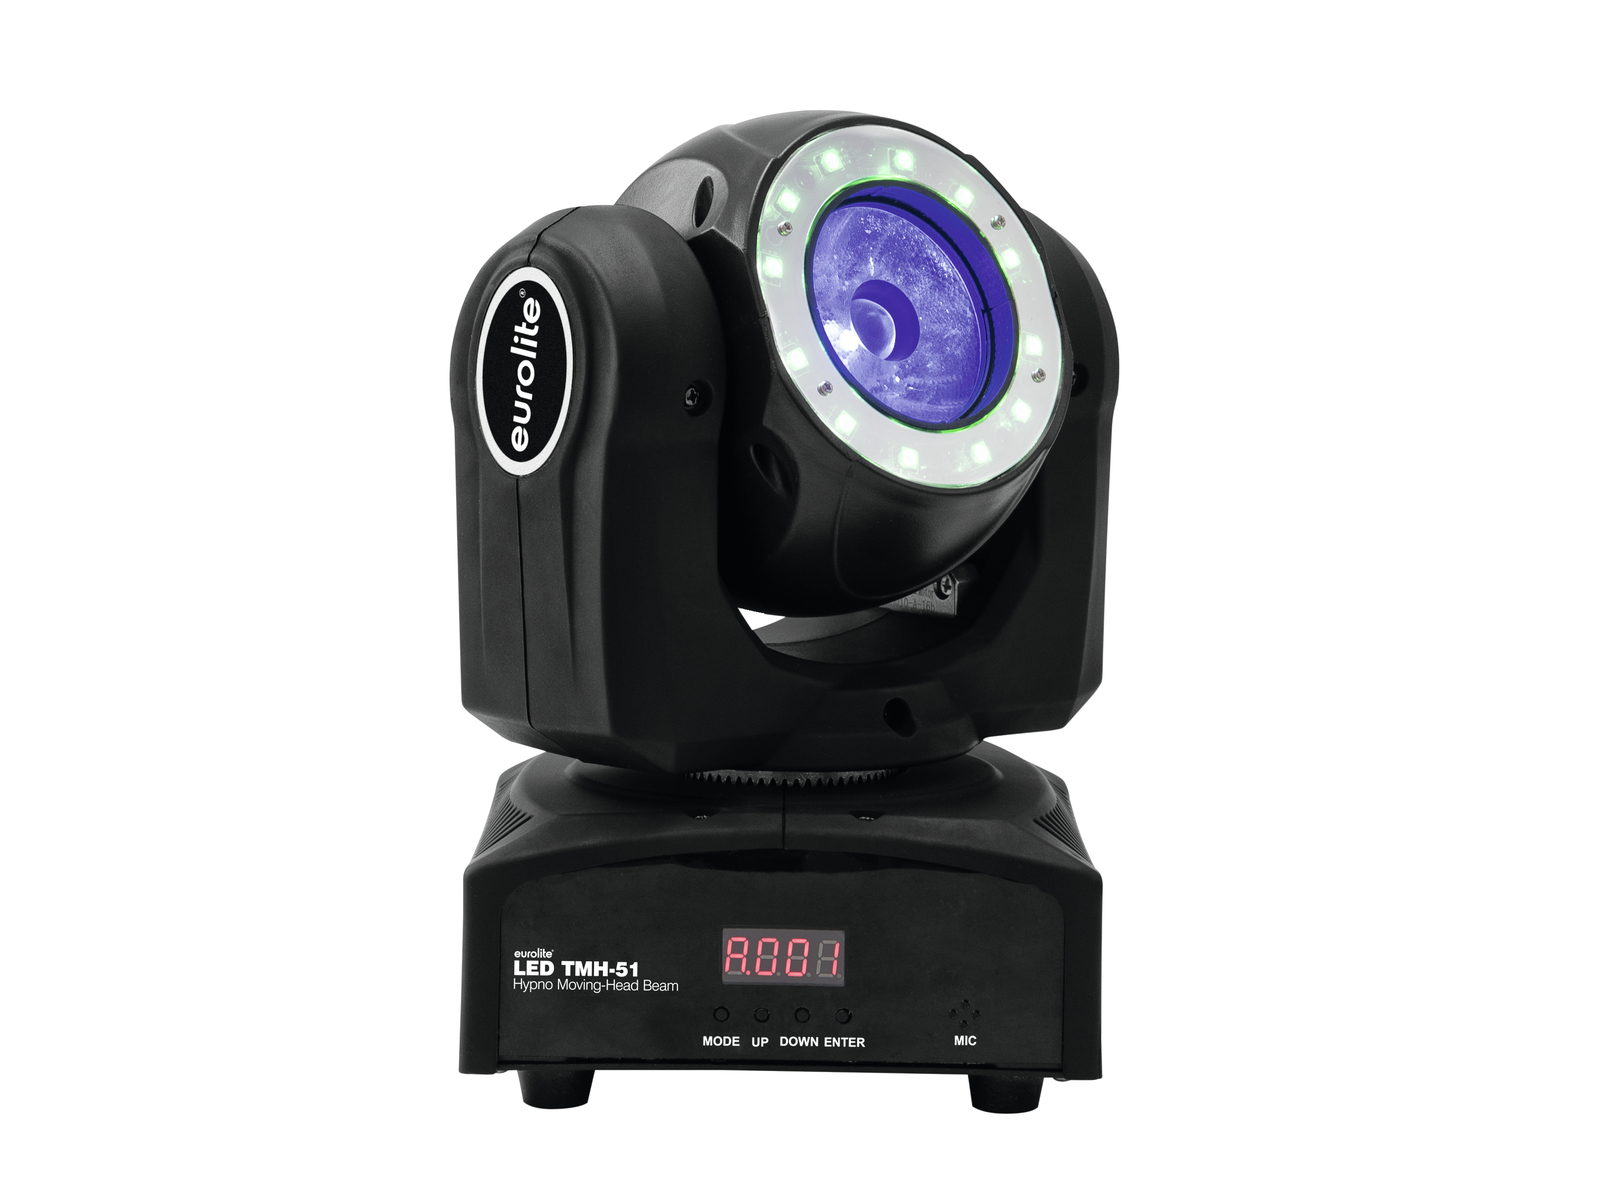 EUROLITE LED TMH-51 Hypno Moving-Head Beam